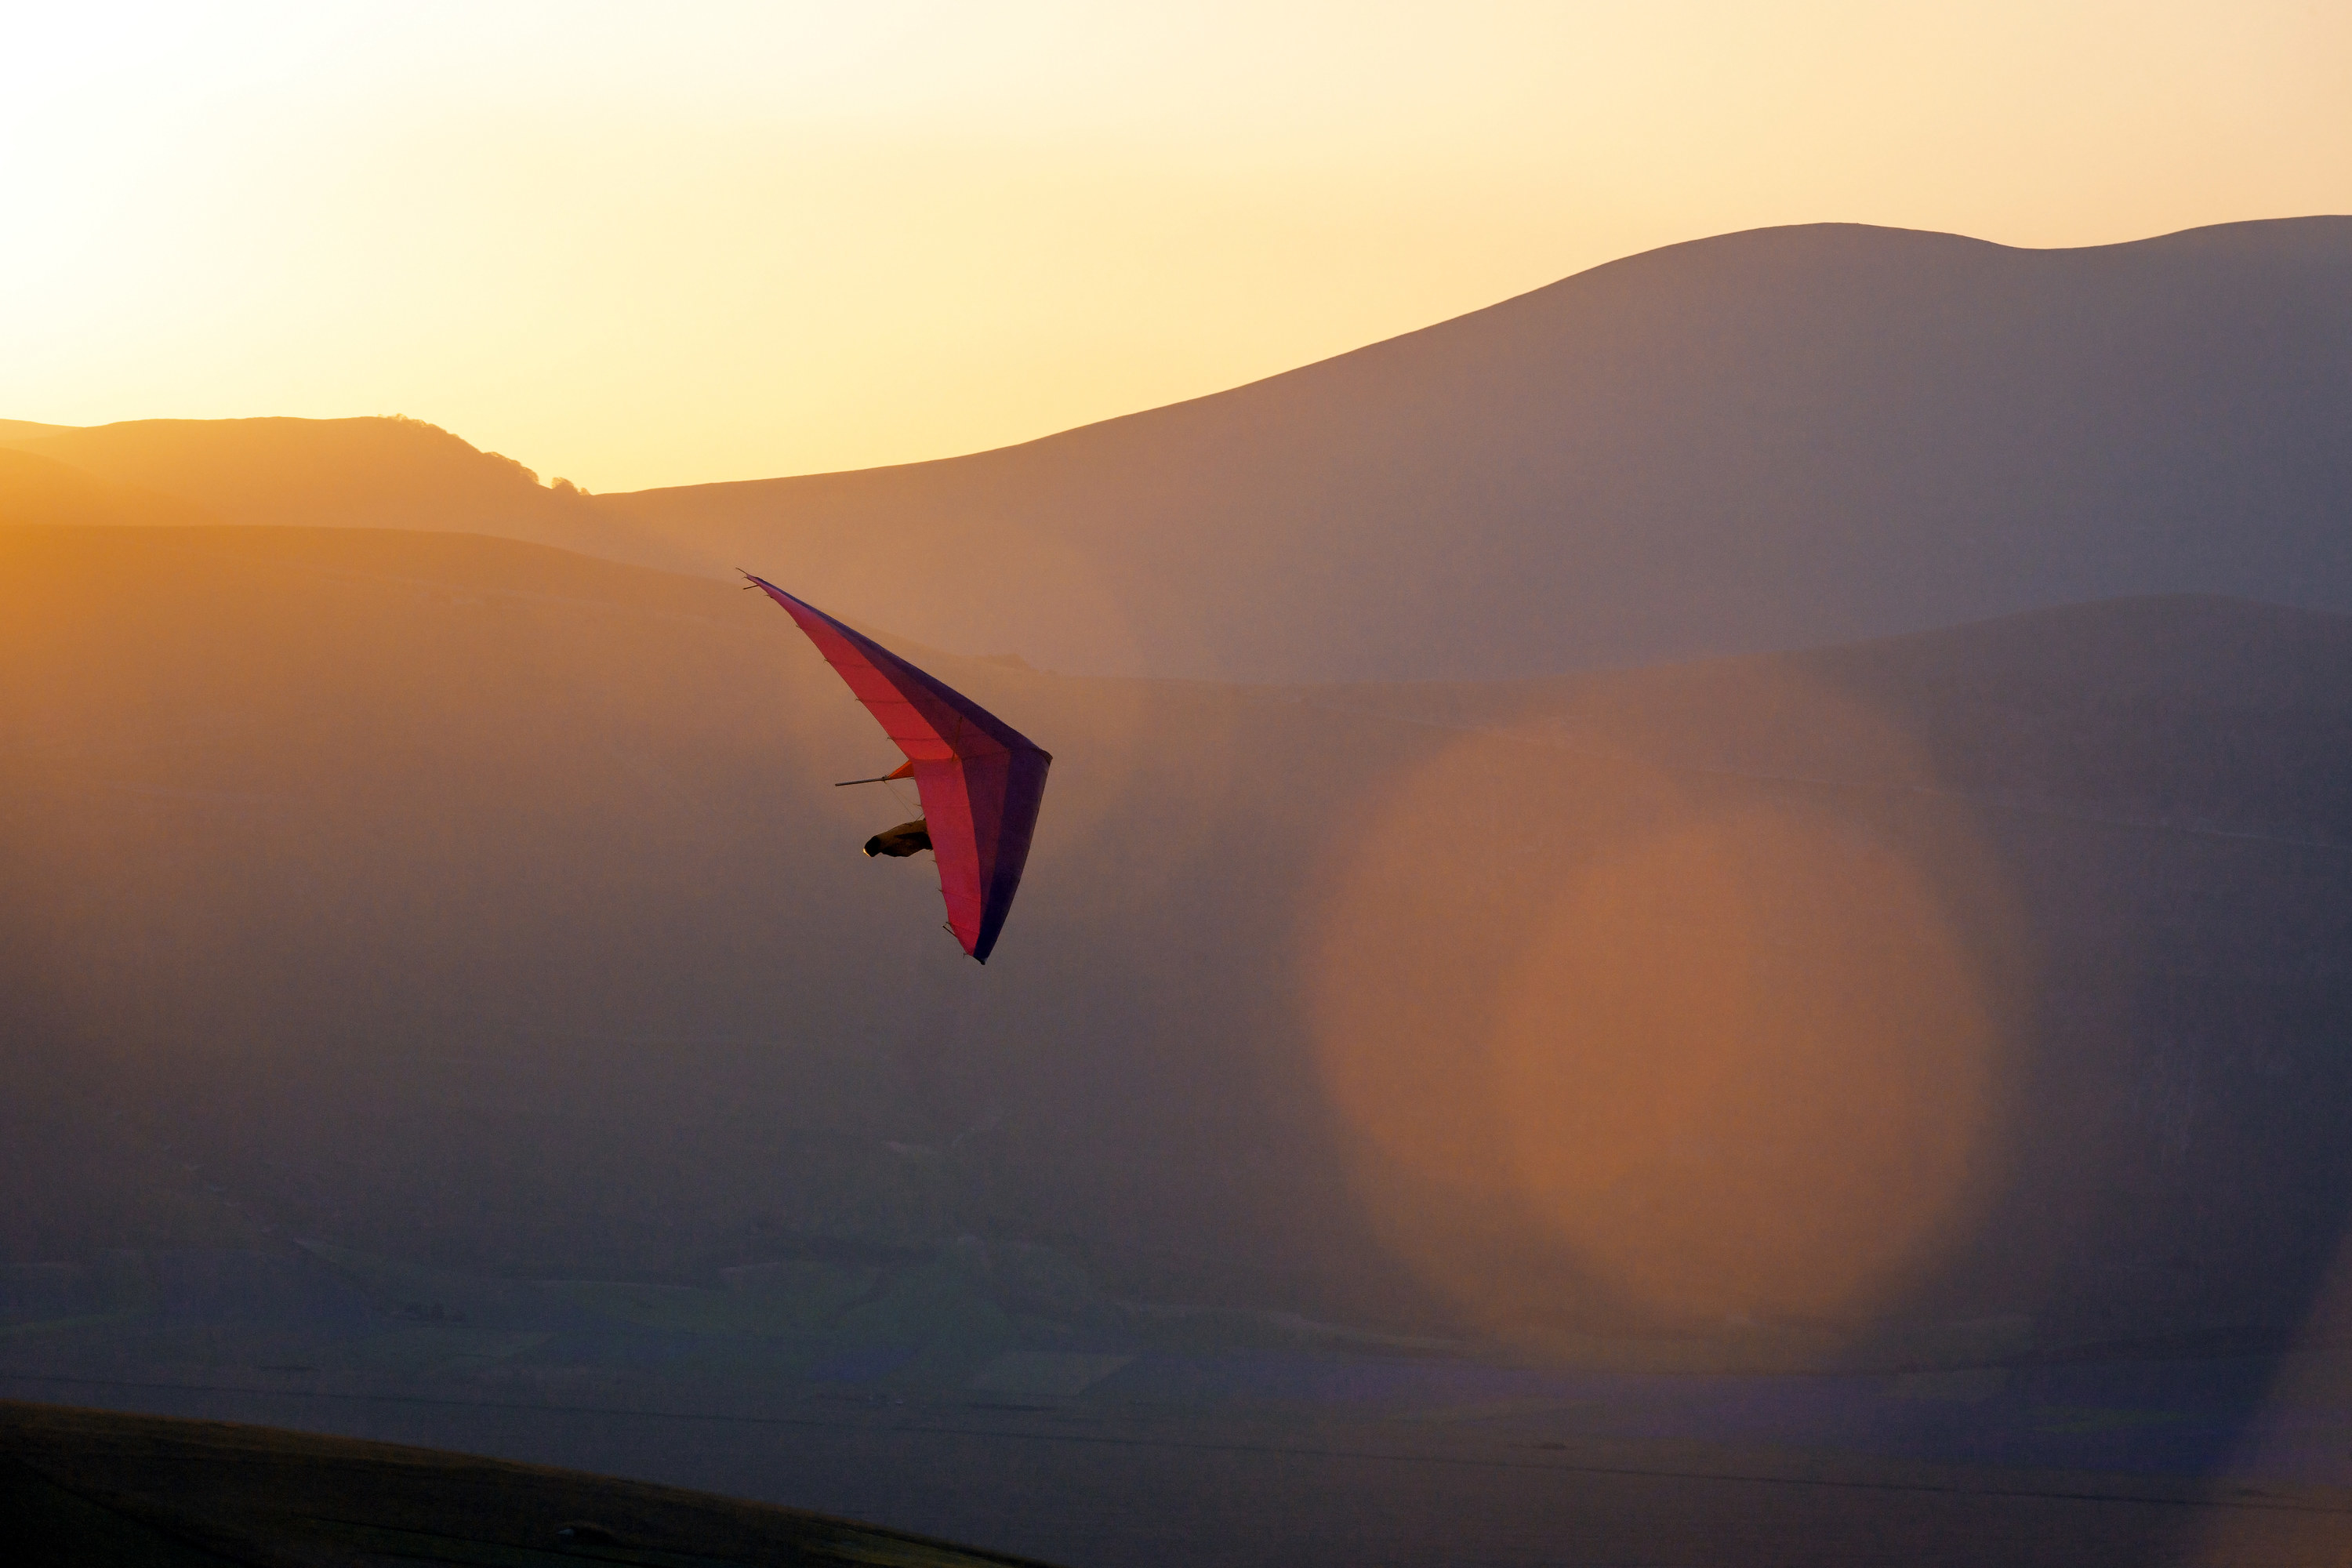 Man gliding during the sunset